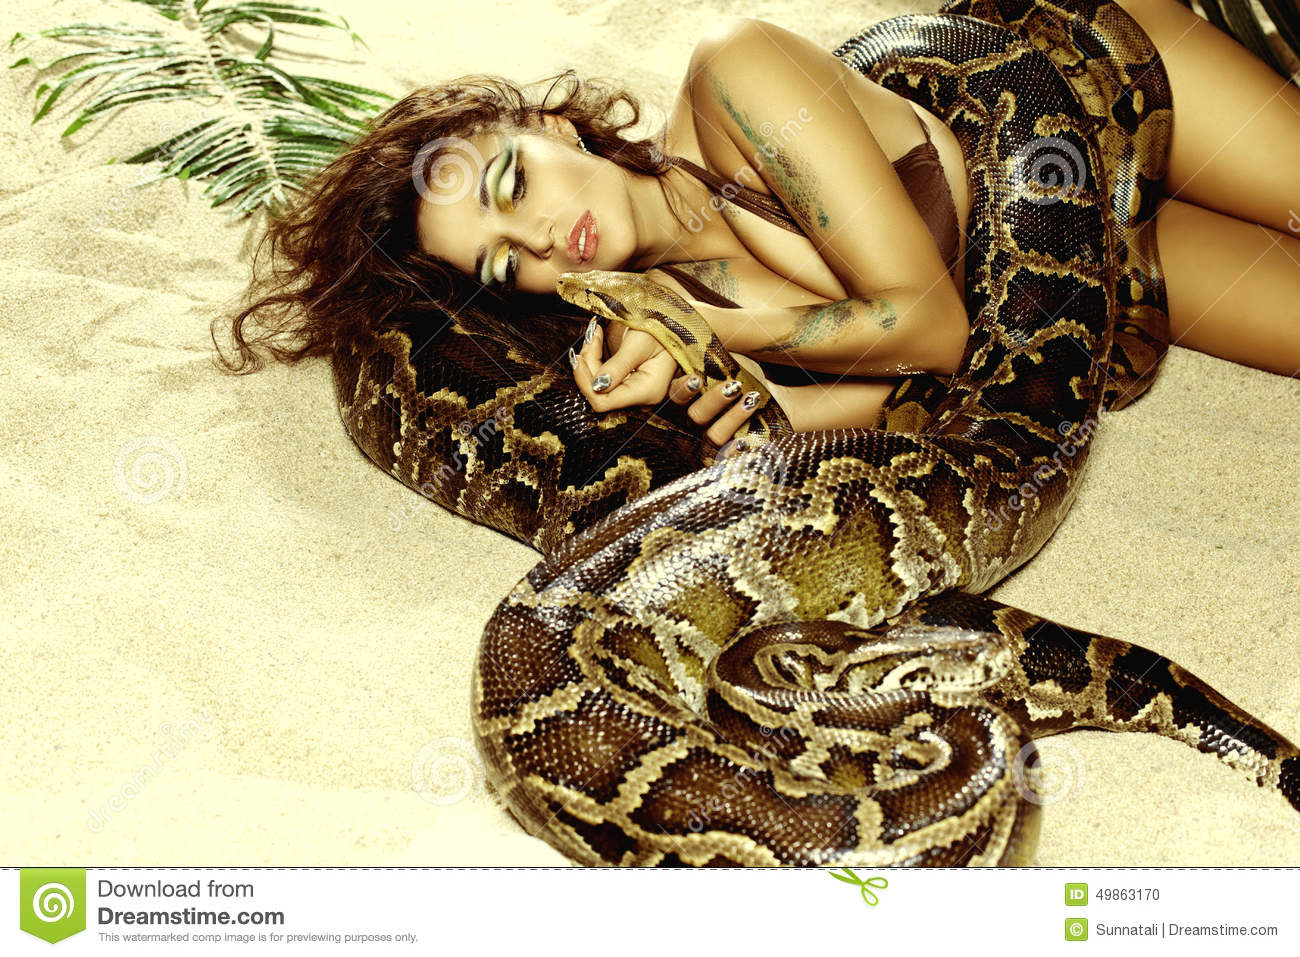 Girl sex with snake image pornos pic